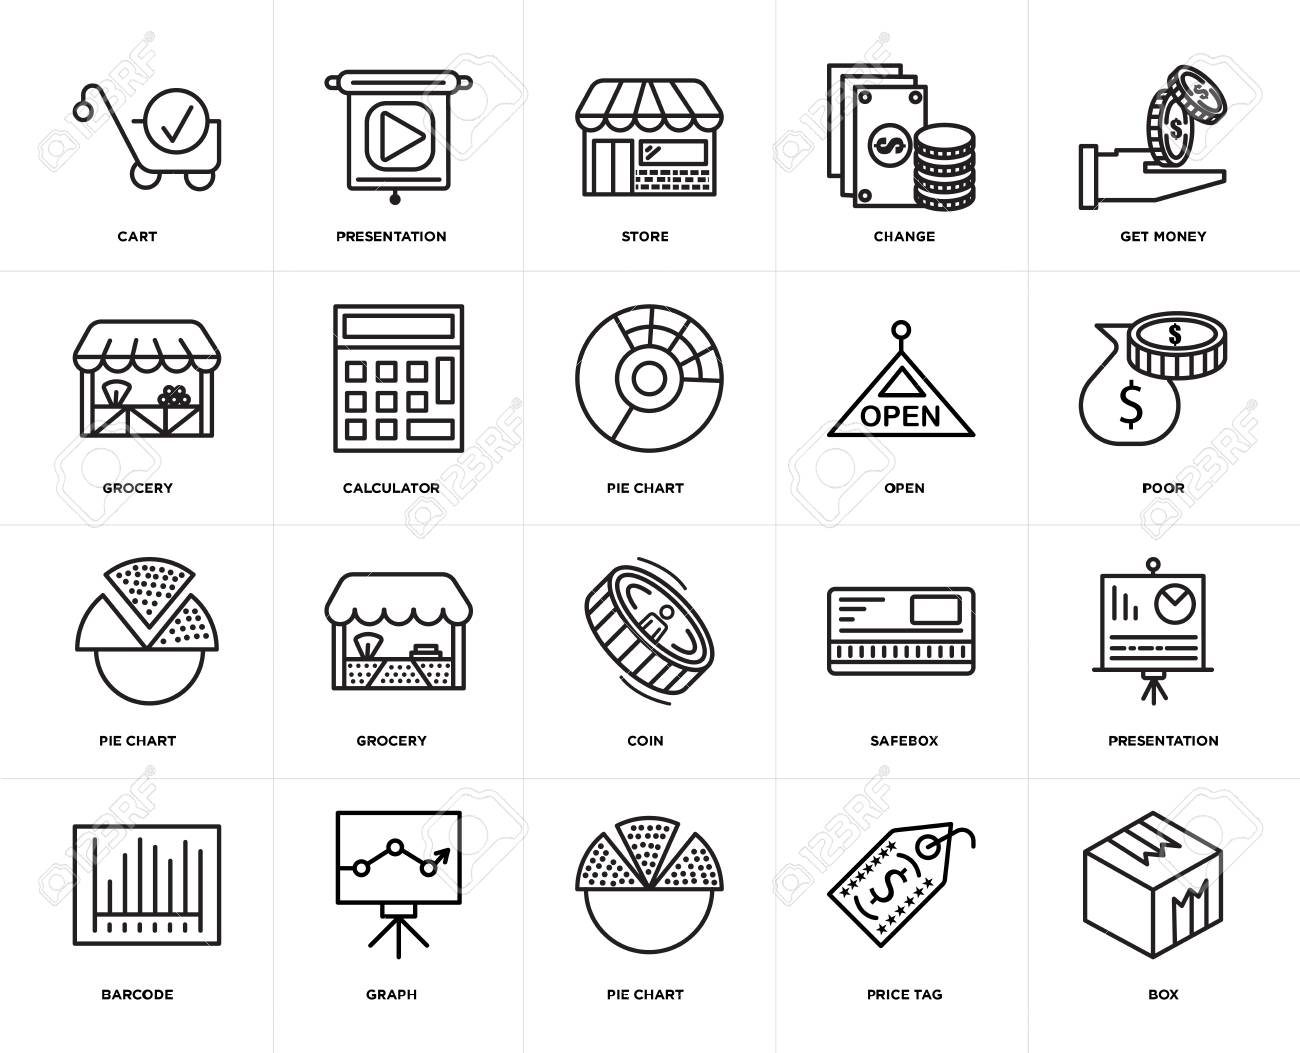 Set Of 20 icons such as Box, Price tag, Pie chart, Graph, Barcode, Get  money, Open, Coin, Calculator, Store, web UI editable icon pack, pixel  perfect